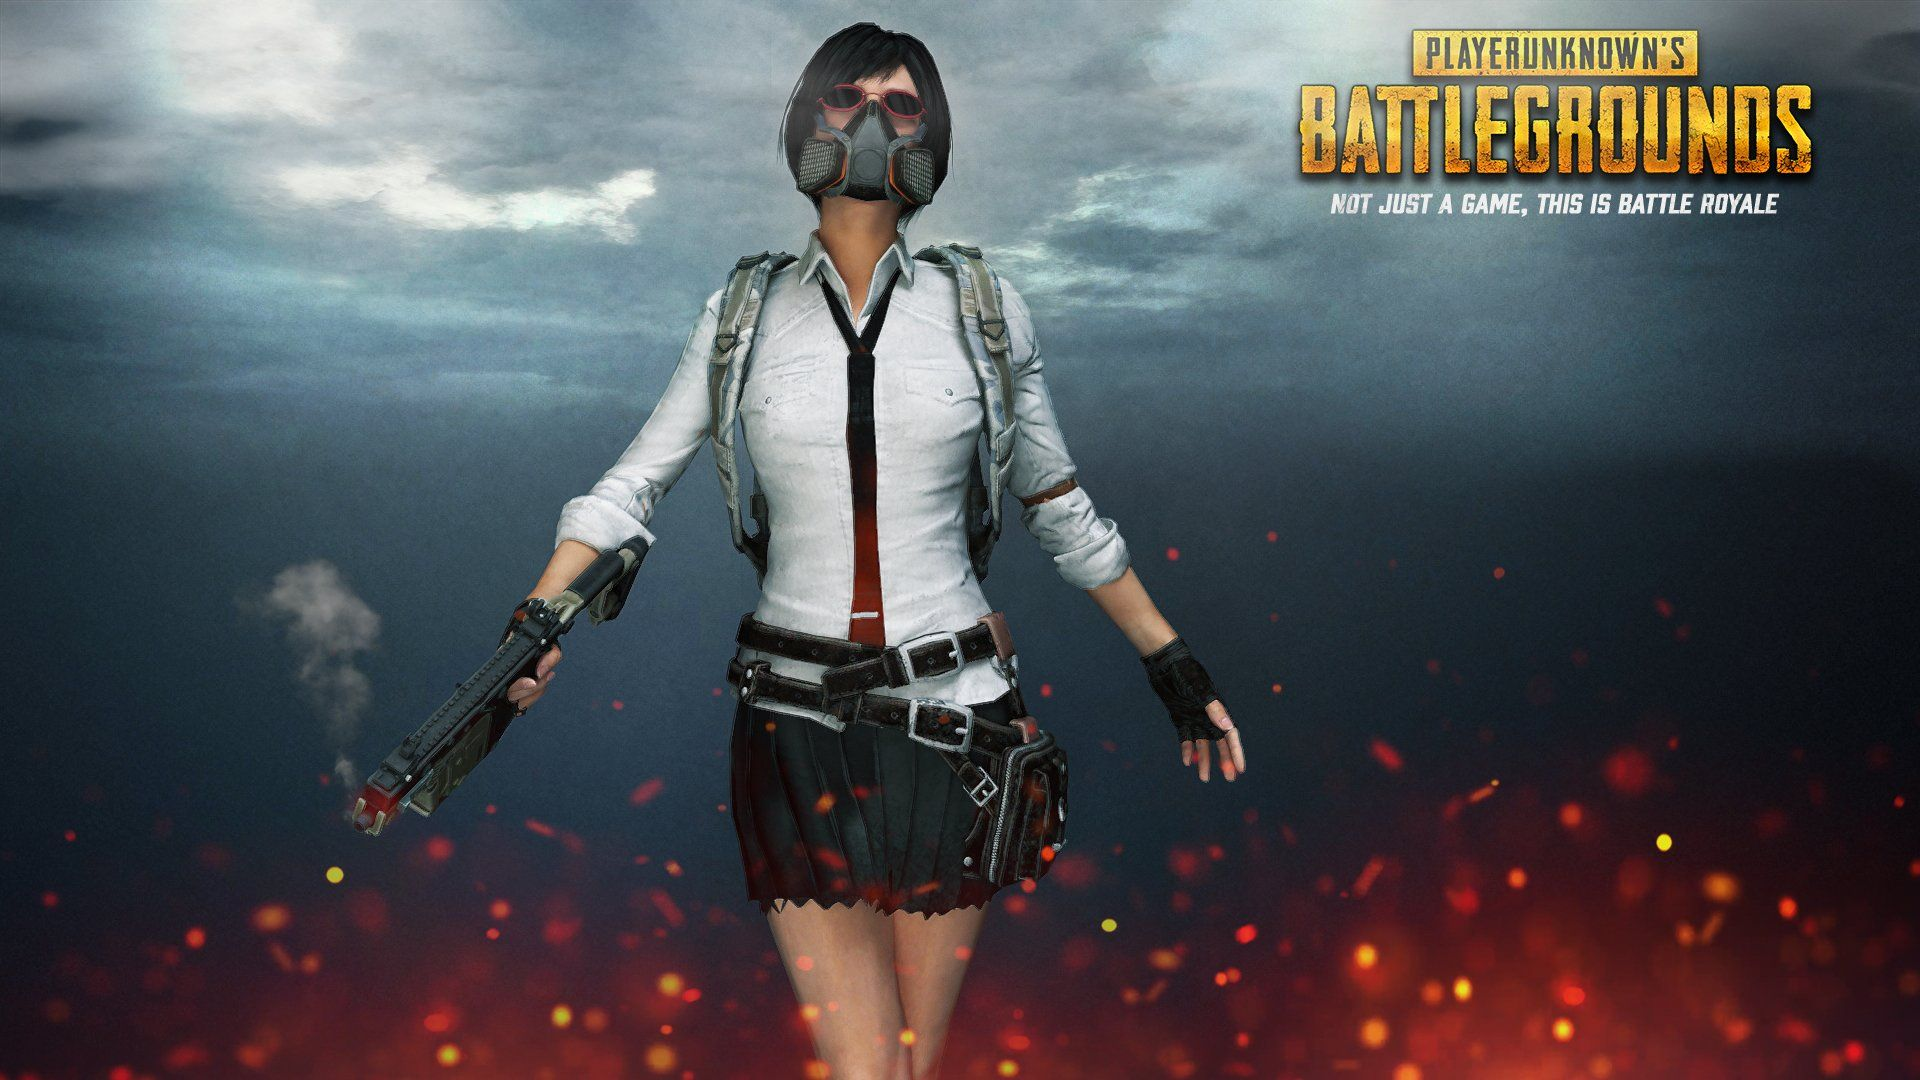 Pubg Wallpaper Hd Pic: Video Game PlayerUnknown's Battlegrounds Wallpaper